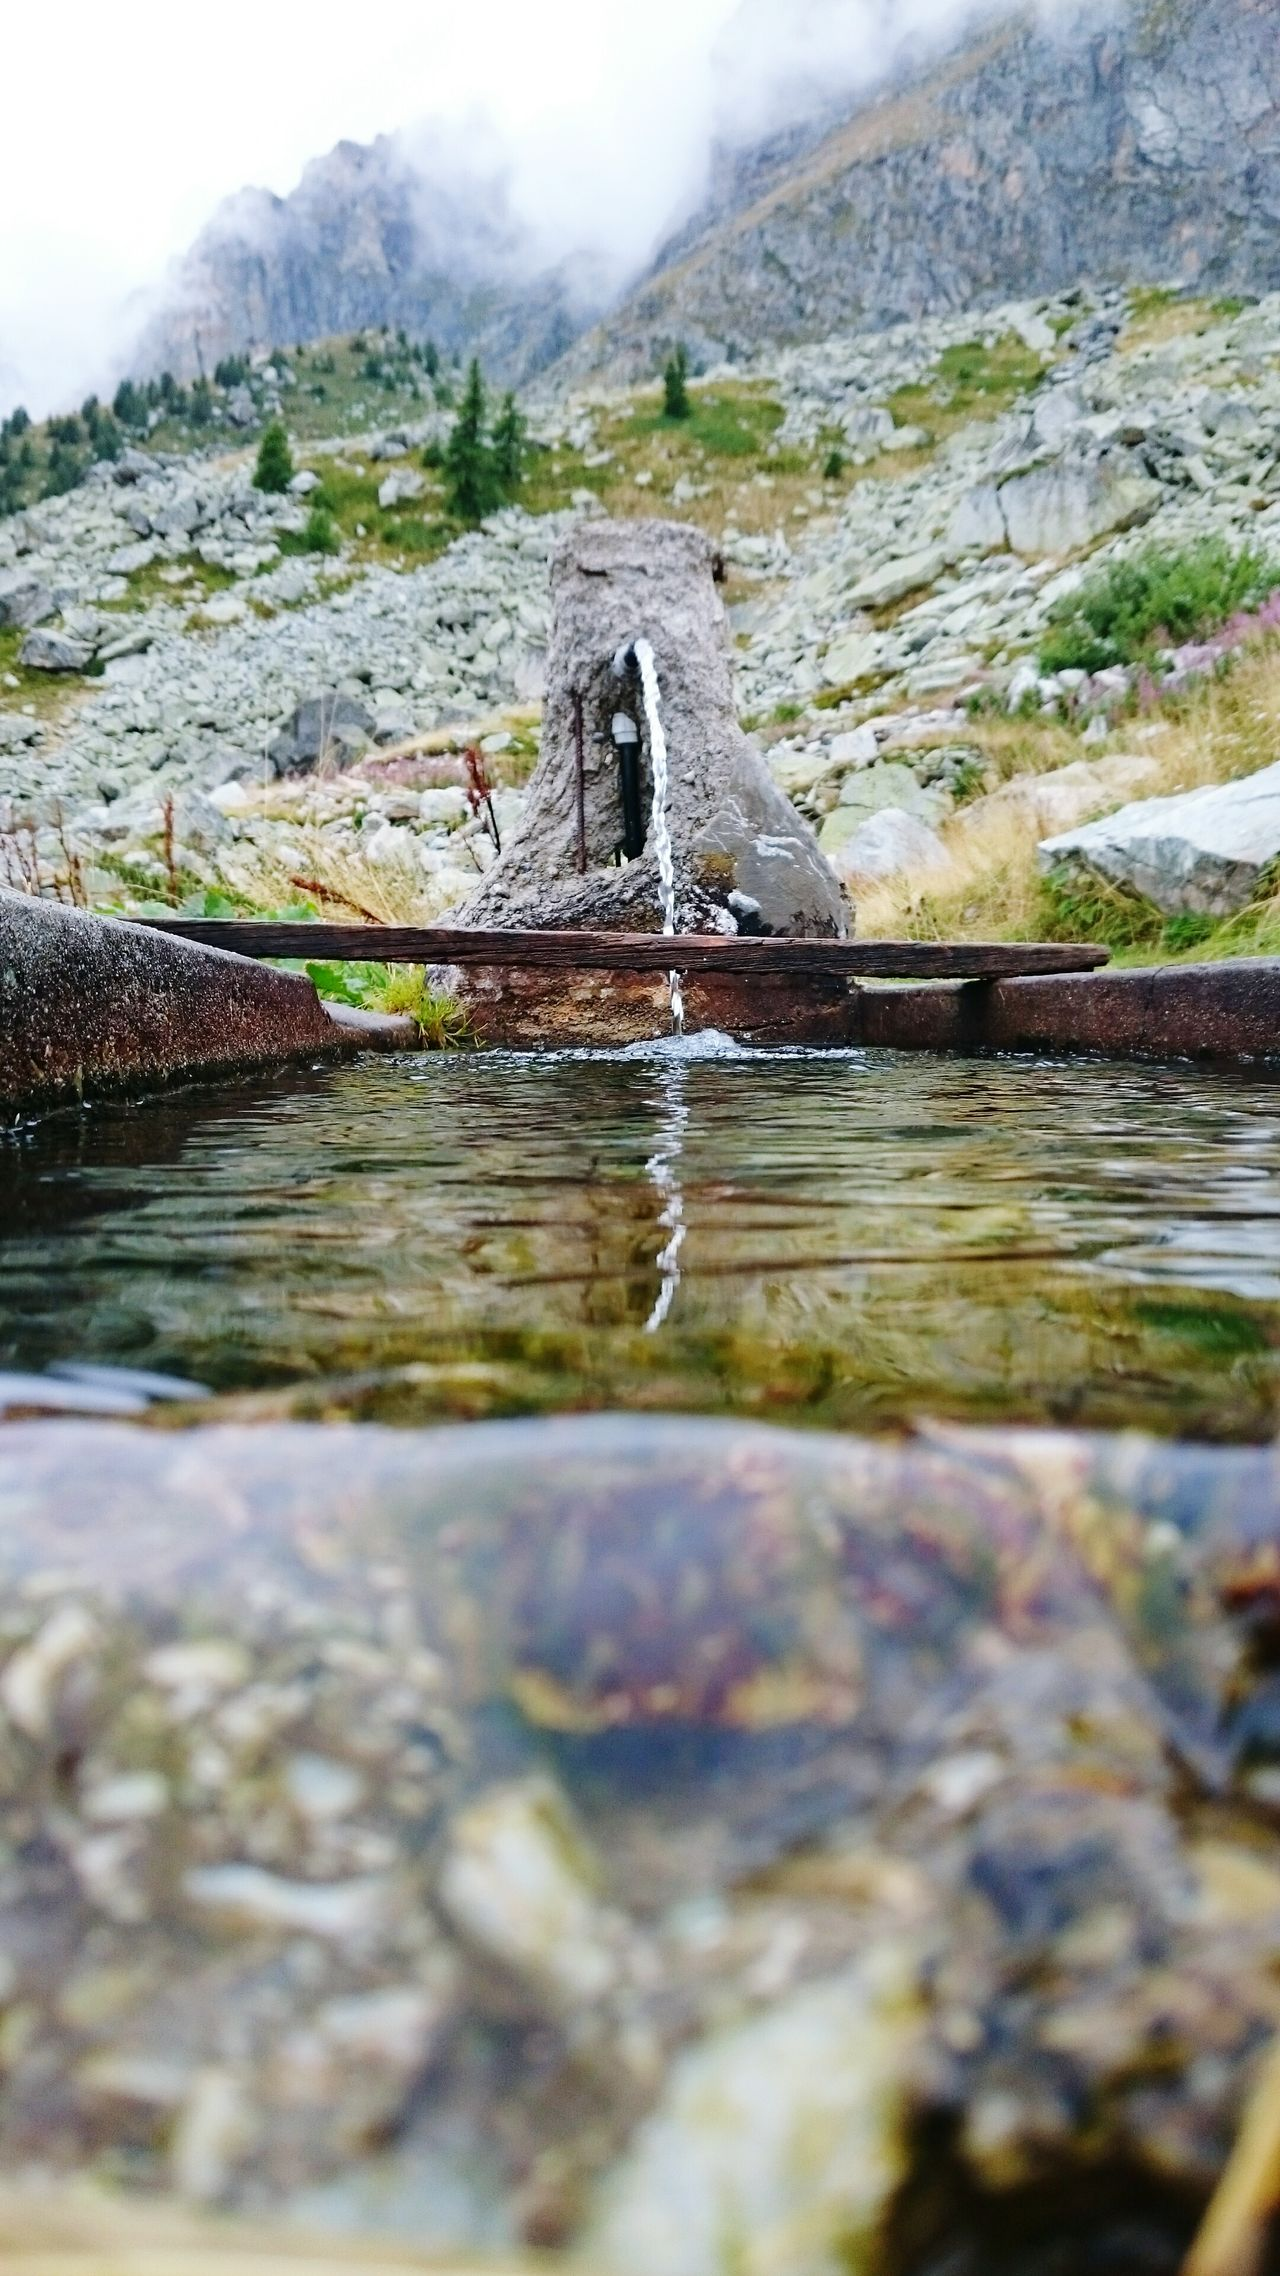 Need For Speed Trentinodavivere Trentino  Abbeveratorio Pascoli Fotosottacqua Trekking Hello World Crazysport Ilovenature